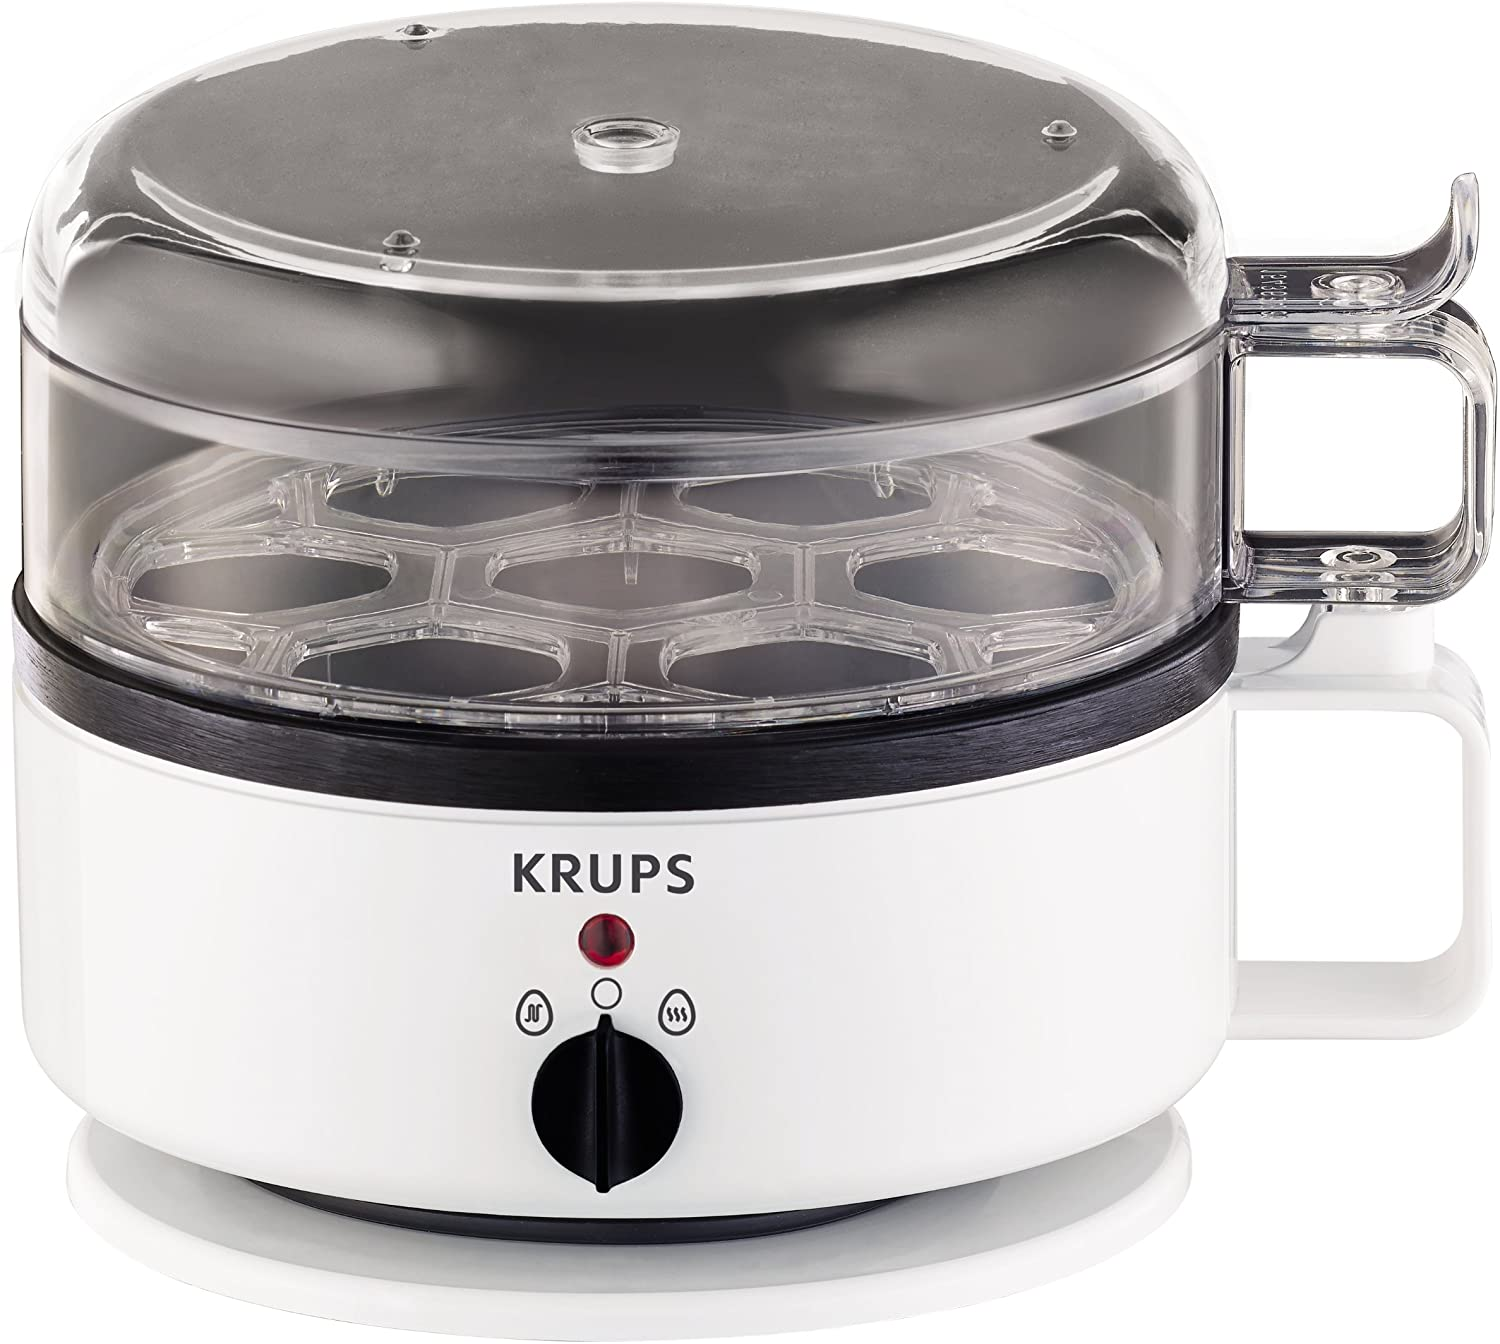 KRUPS F23070 Egg Cooker with Water capac Ranking Shipping included TOP4 Level Indicator 7-Eggs